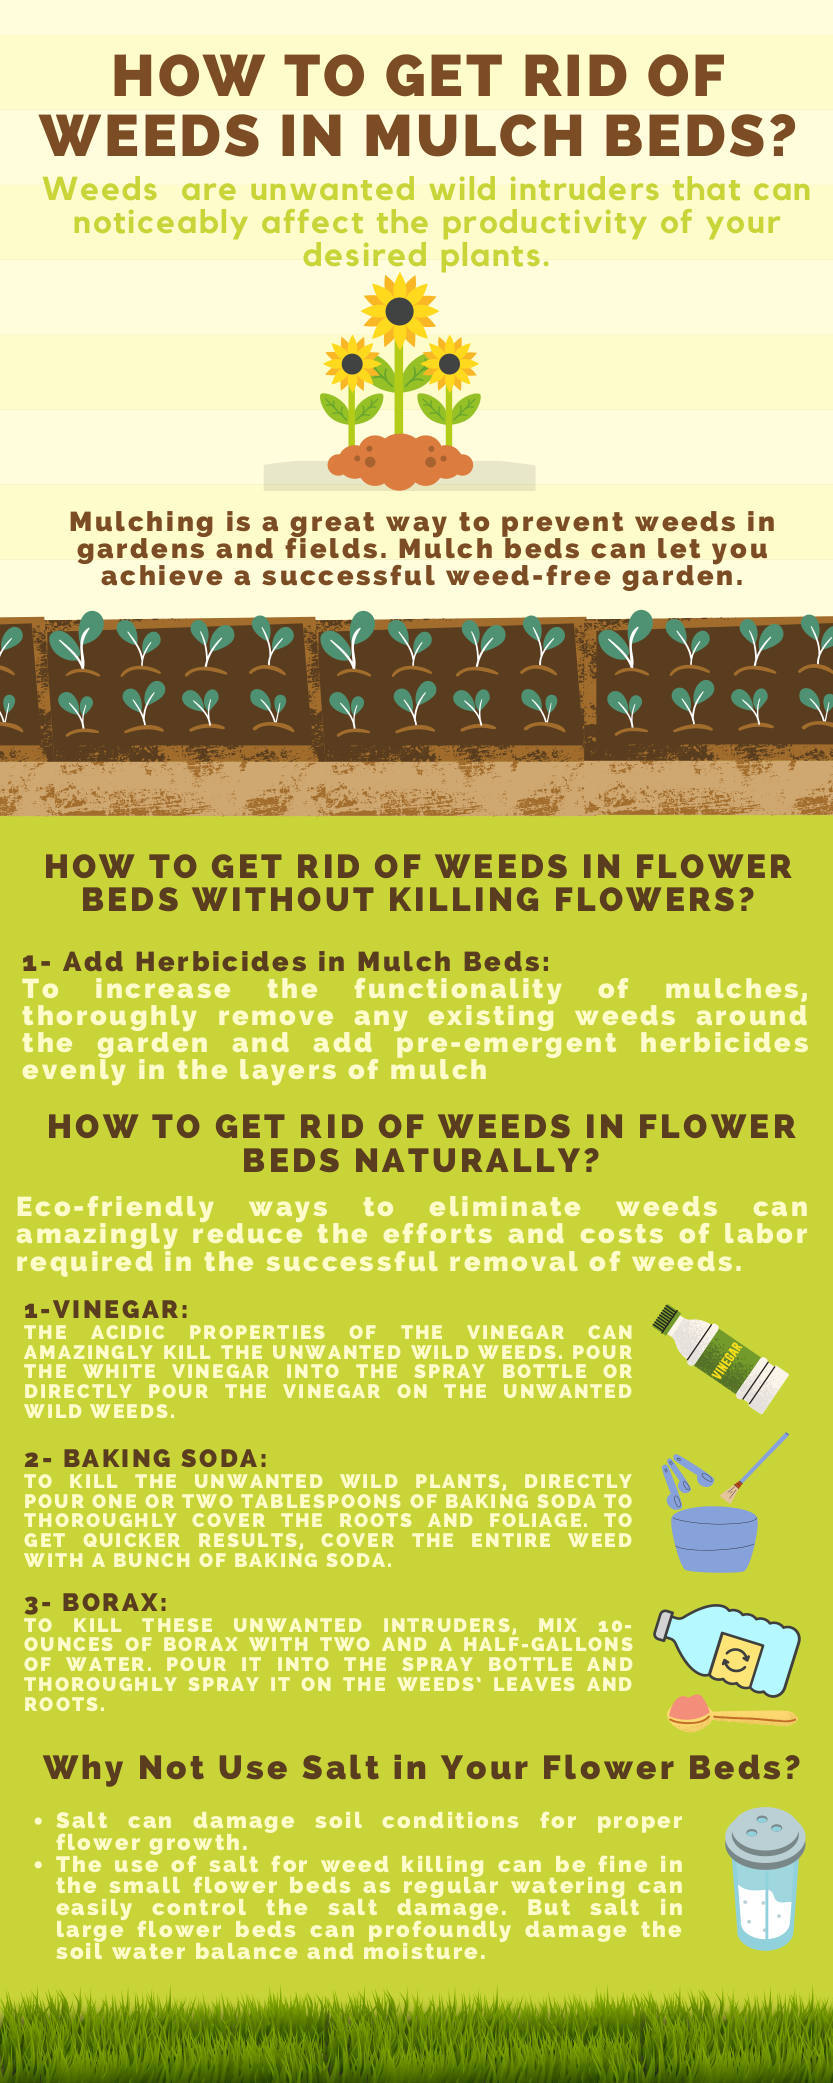 How to Get Rid of Weeds in Mulch Beds Infographic